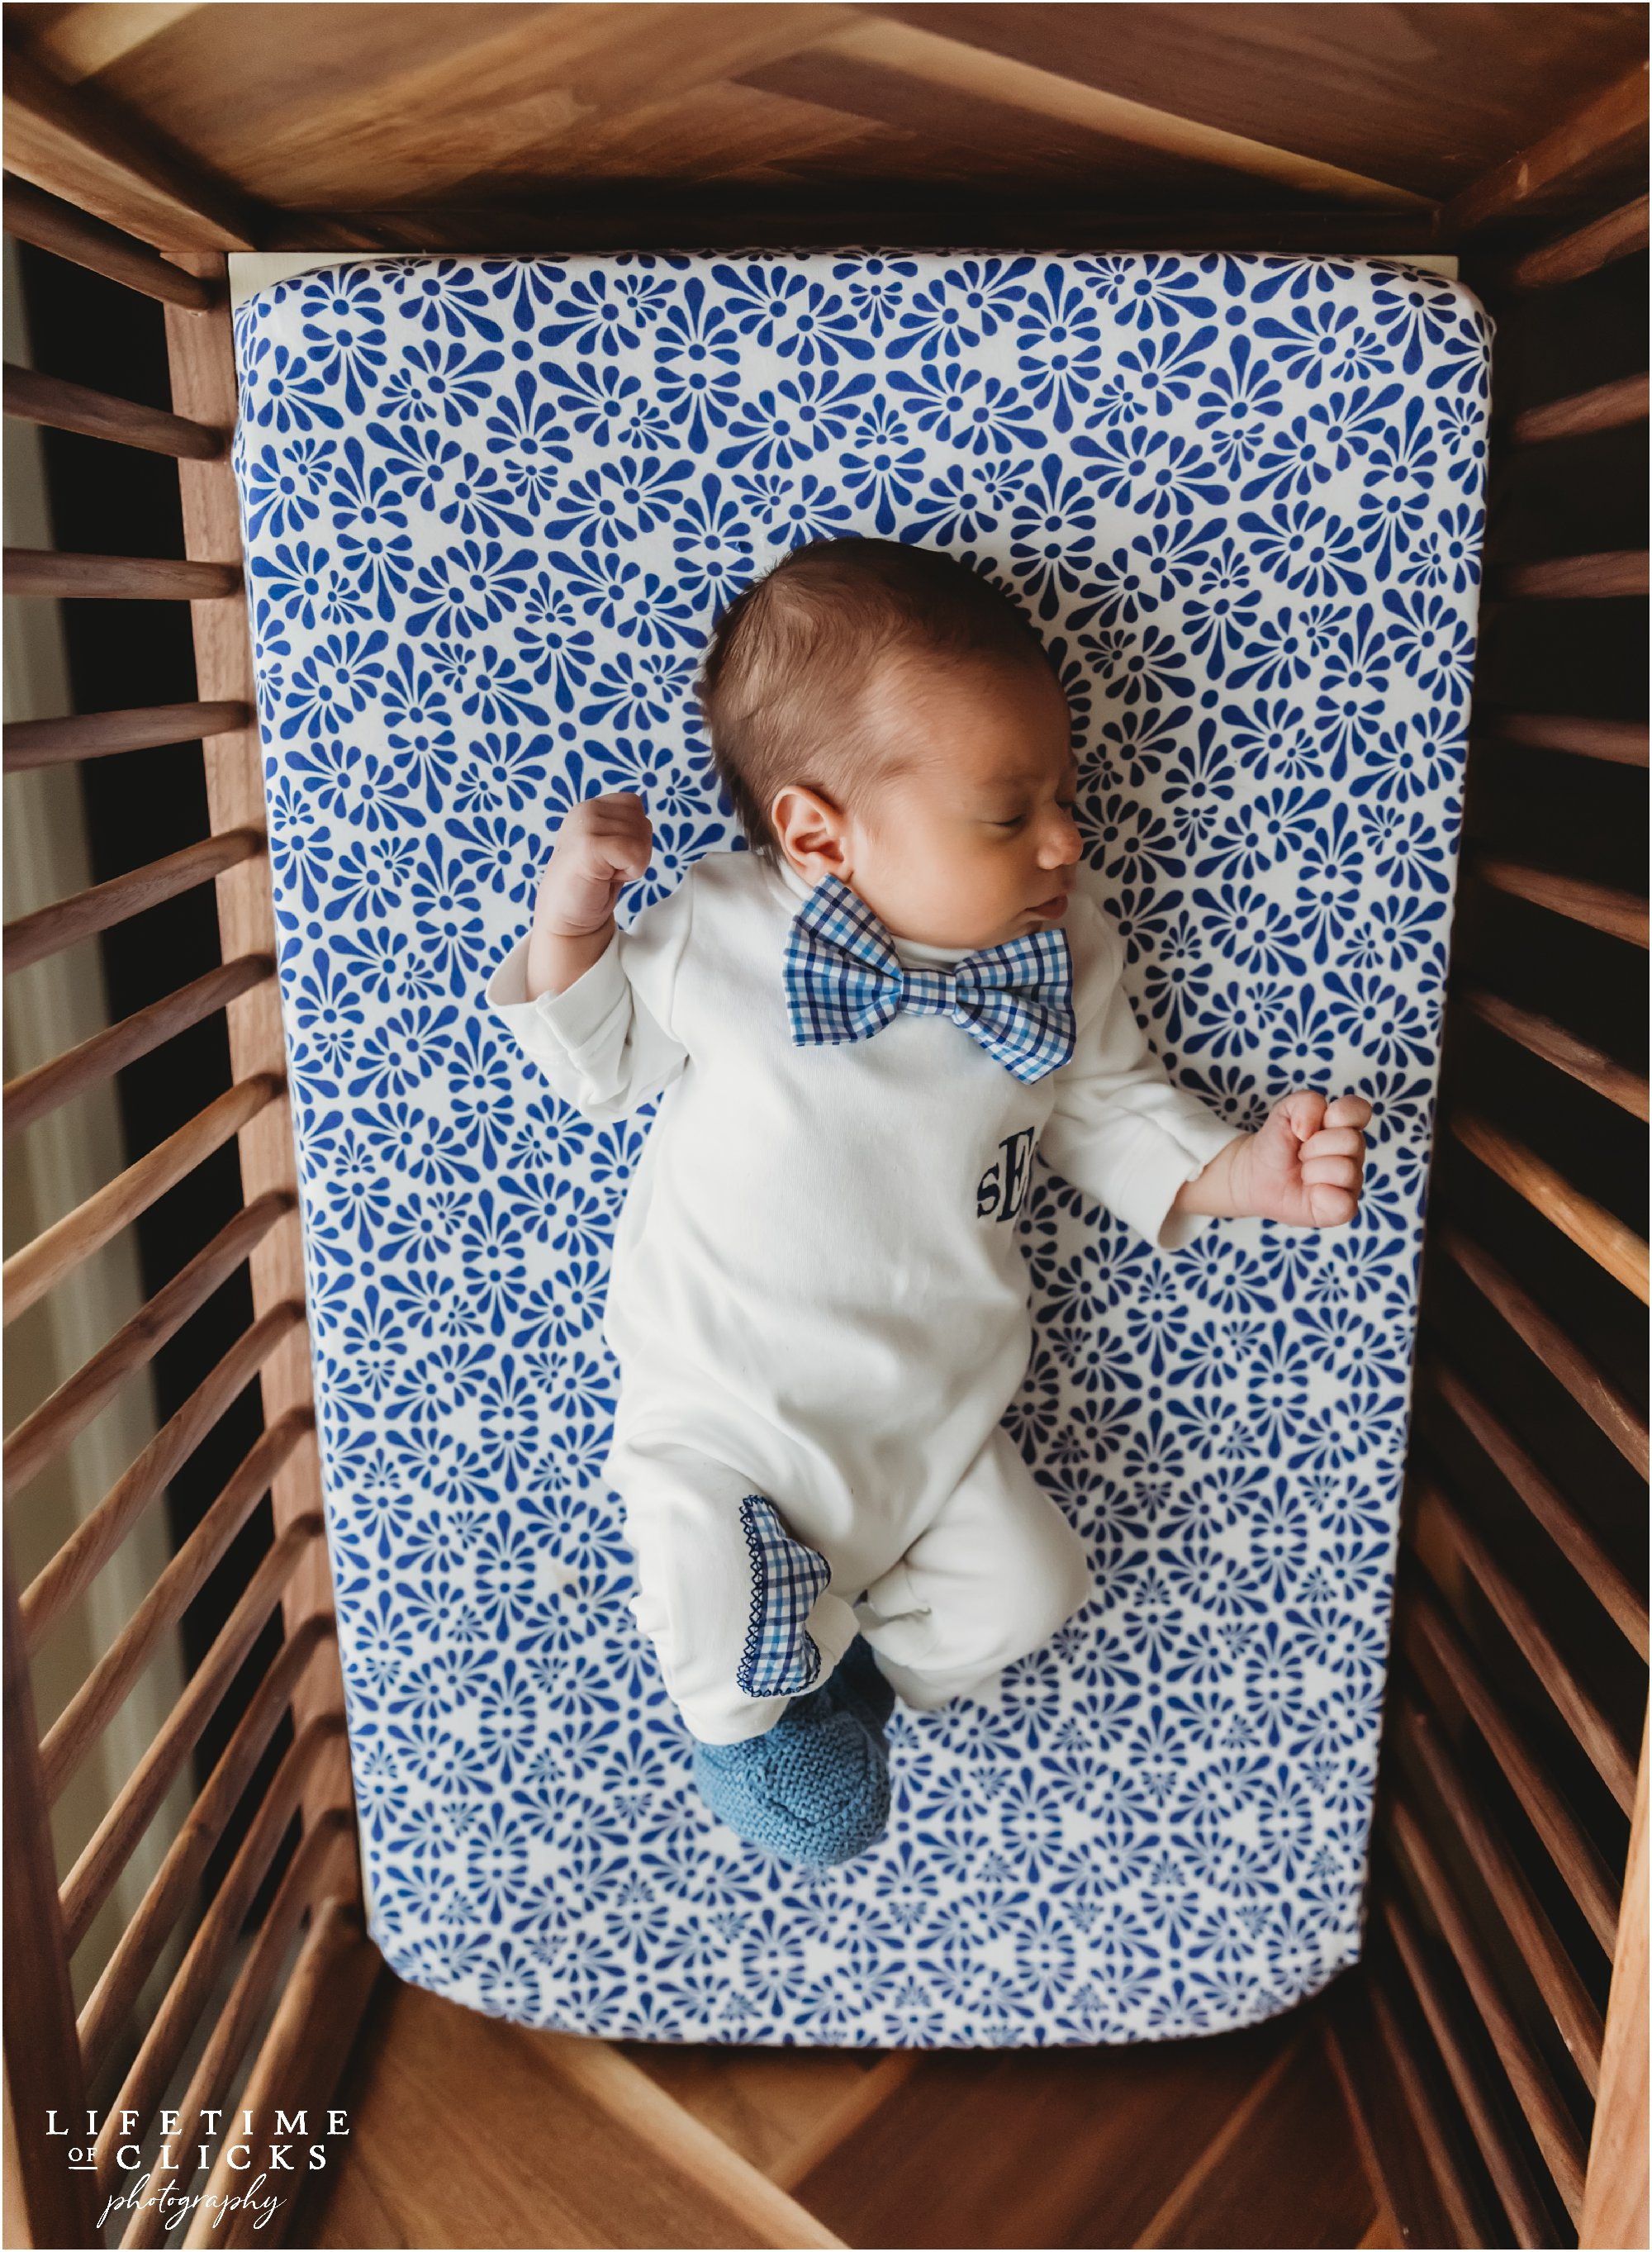 Newborn boy wearing white onesie and blue plaid bow tie sleeping in a bassinet